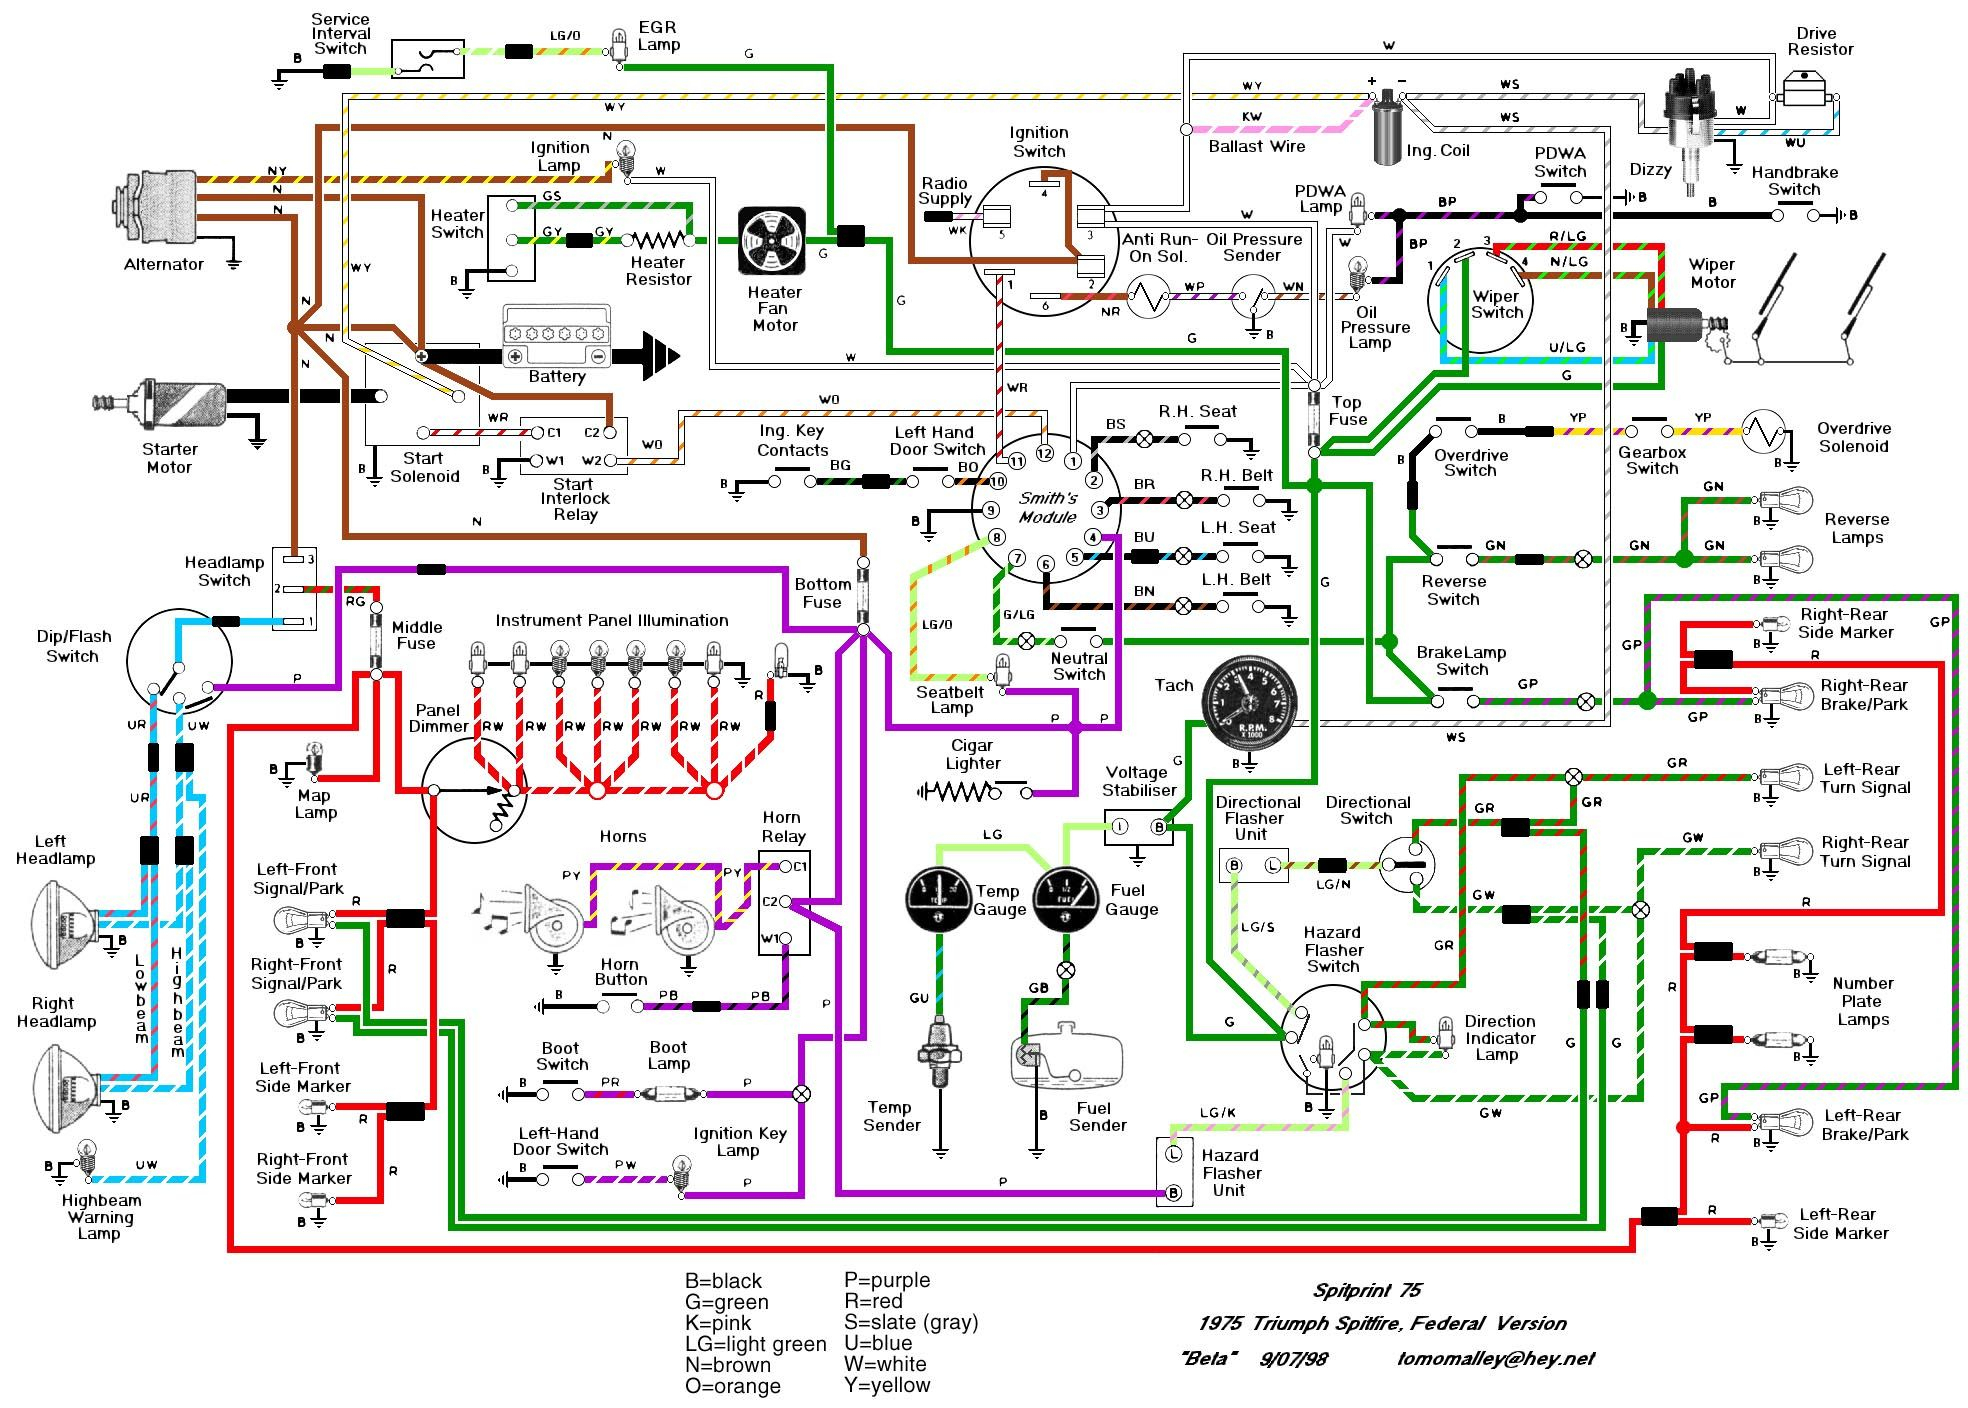 Diagram 72 Mgb Wiring Diagram Schematic Full Version Hd Quality Diagram Schematic Stoneswiring2k Atuttasosta It